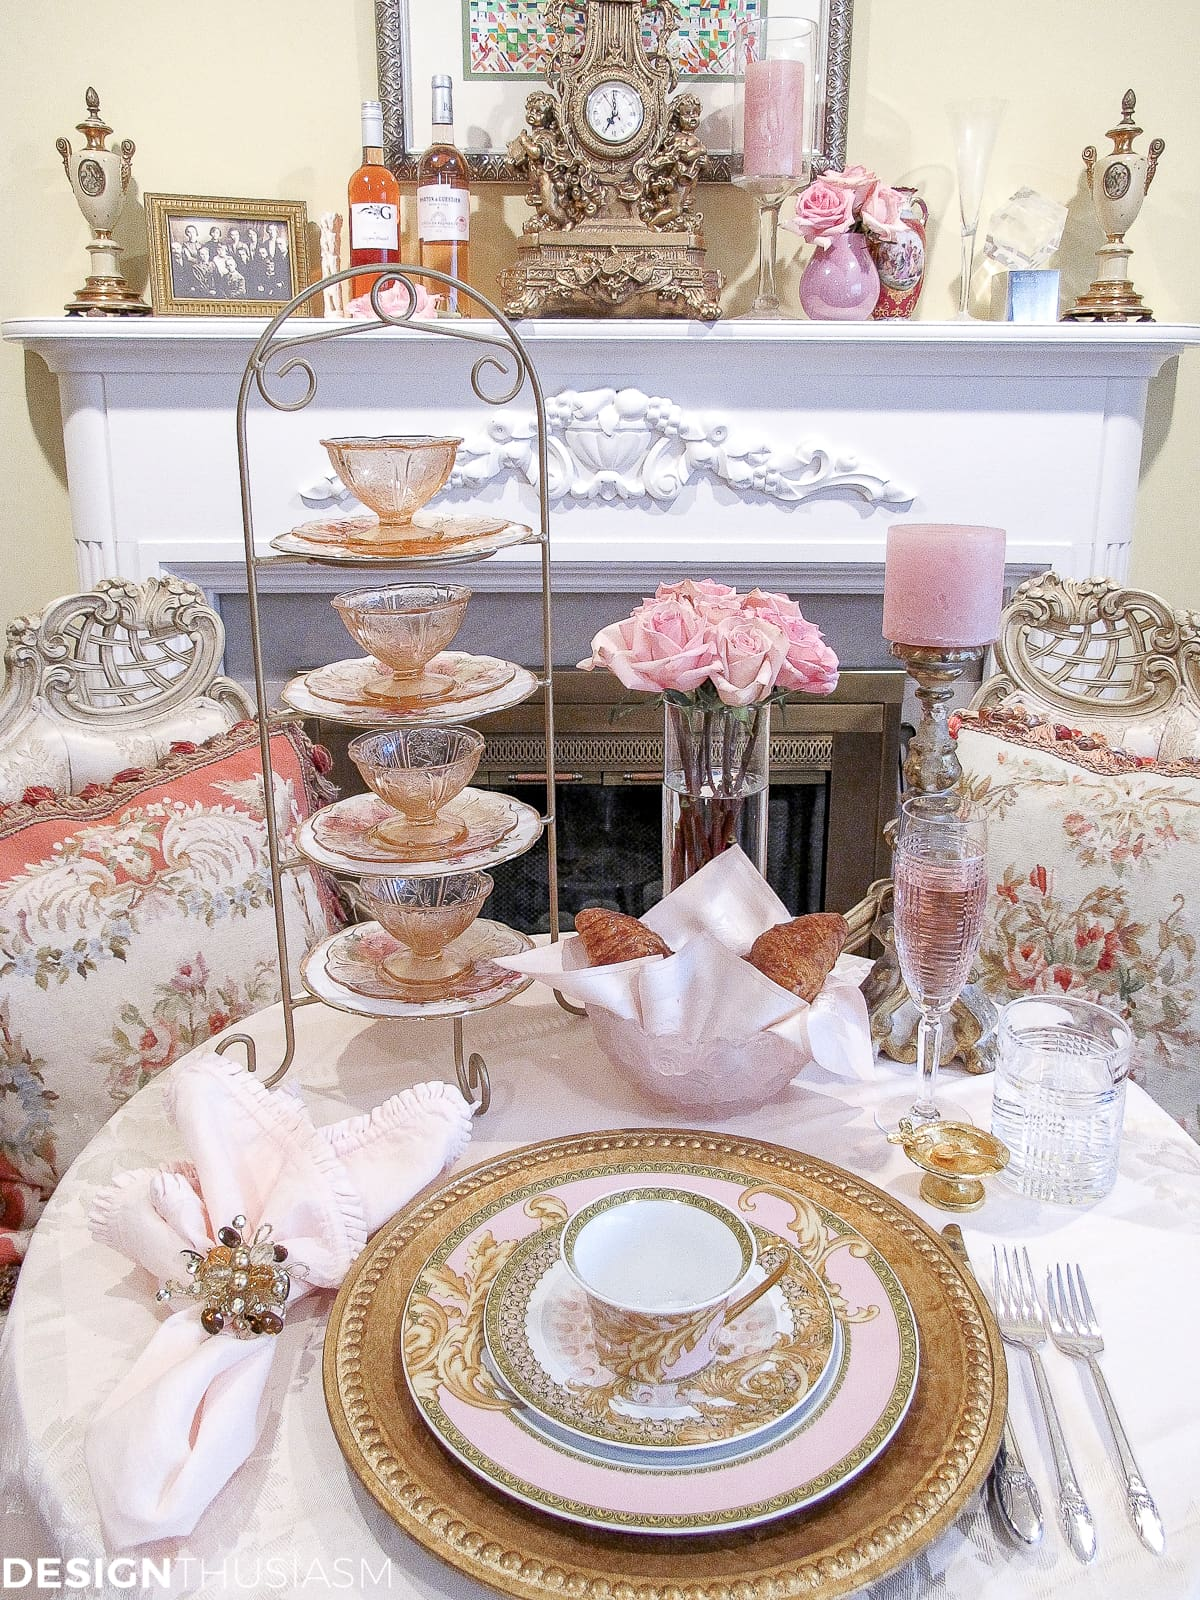 Tea party table setting with pink and gold Versace plates and aubusson pillows